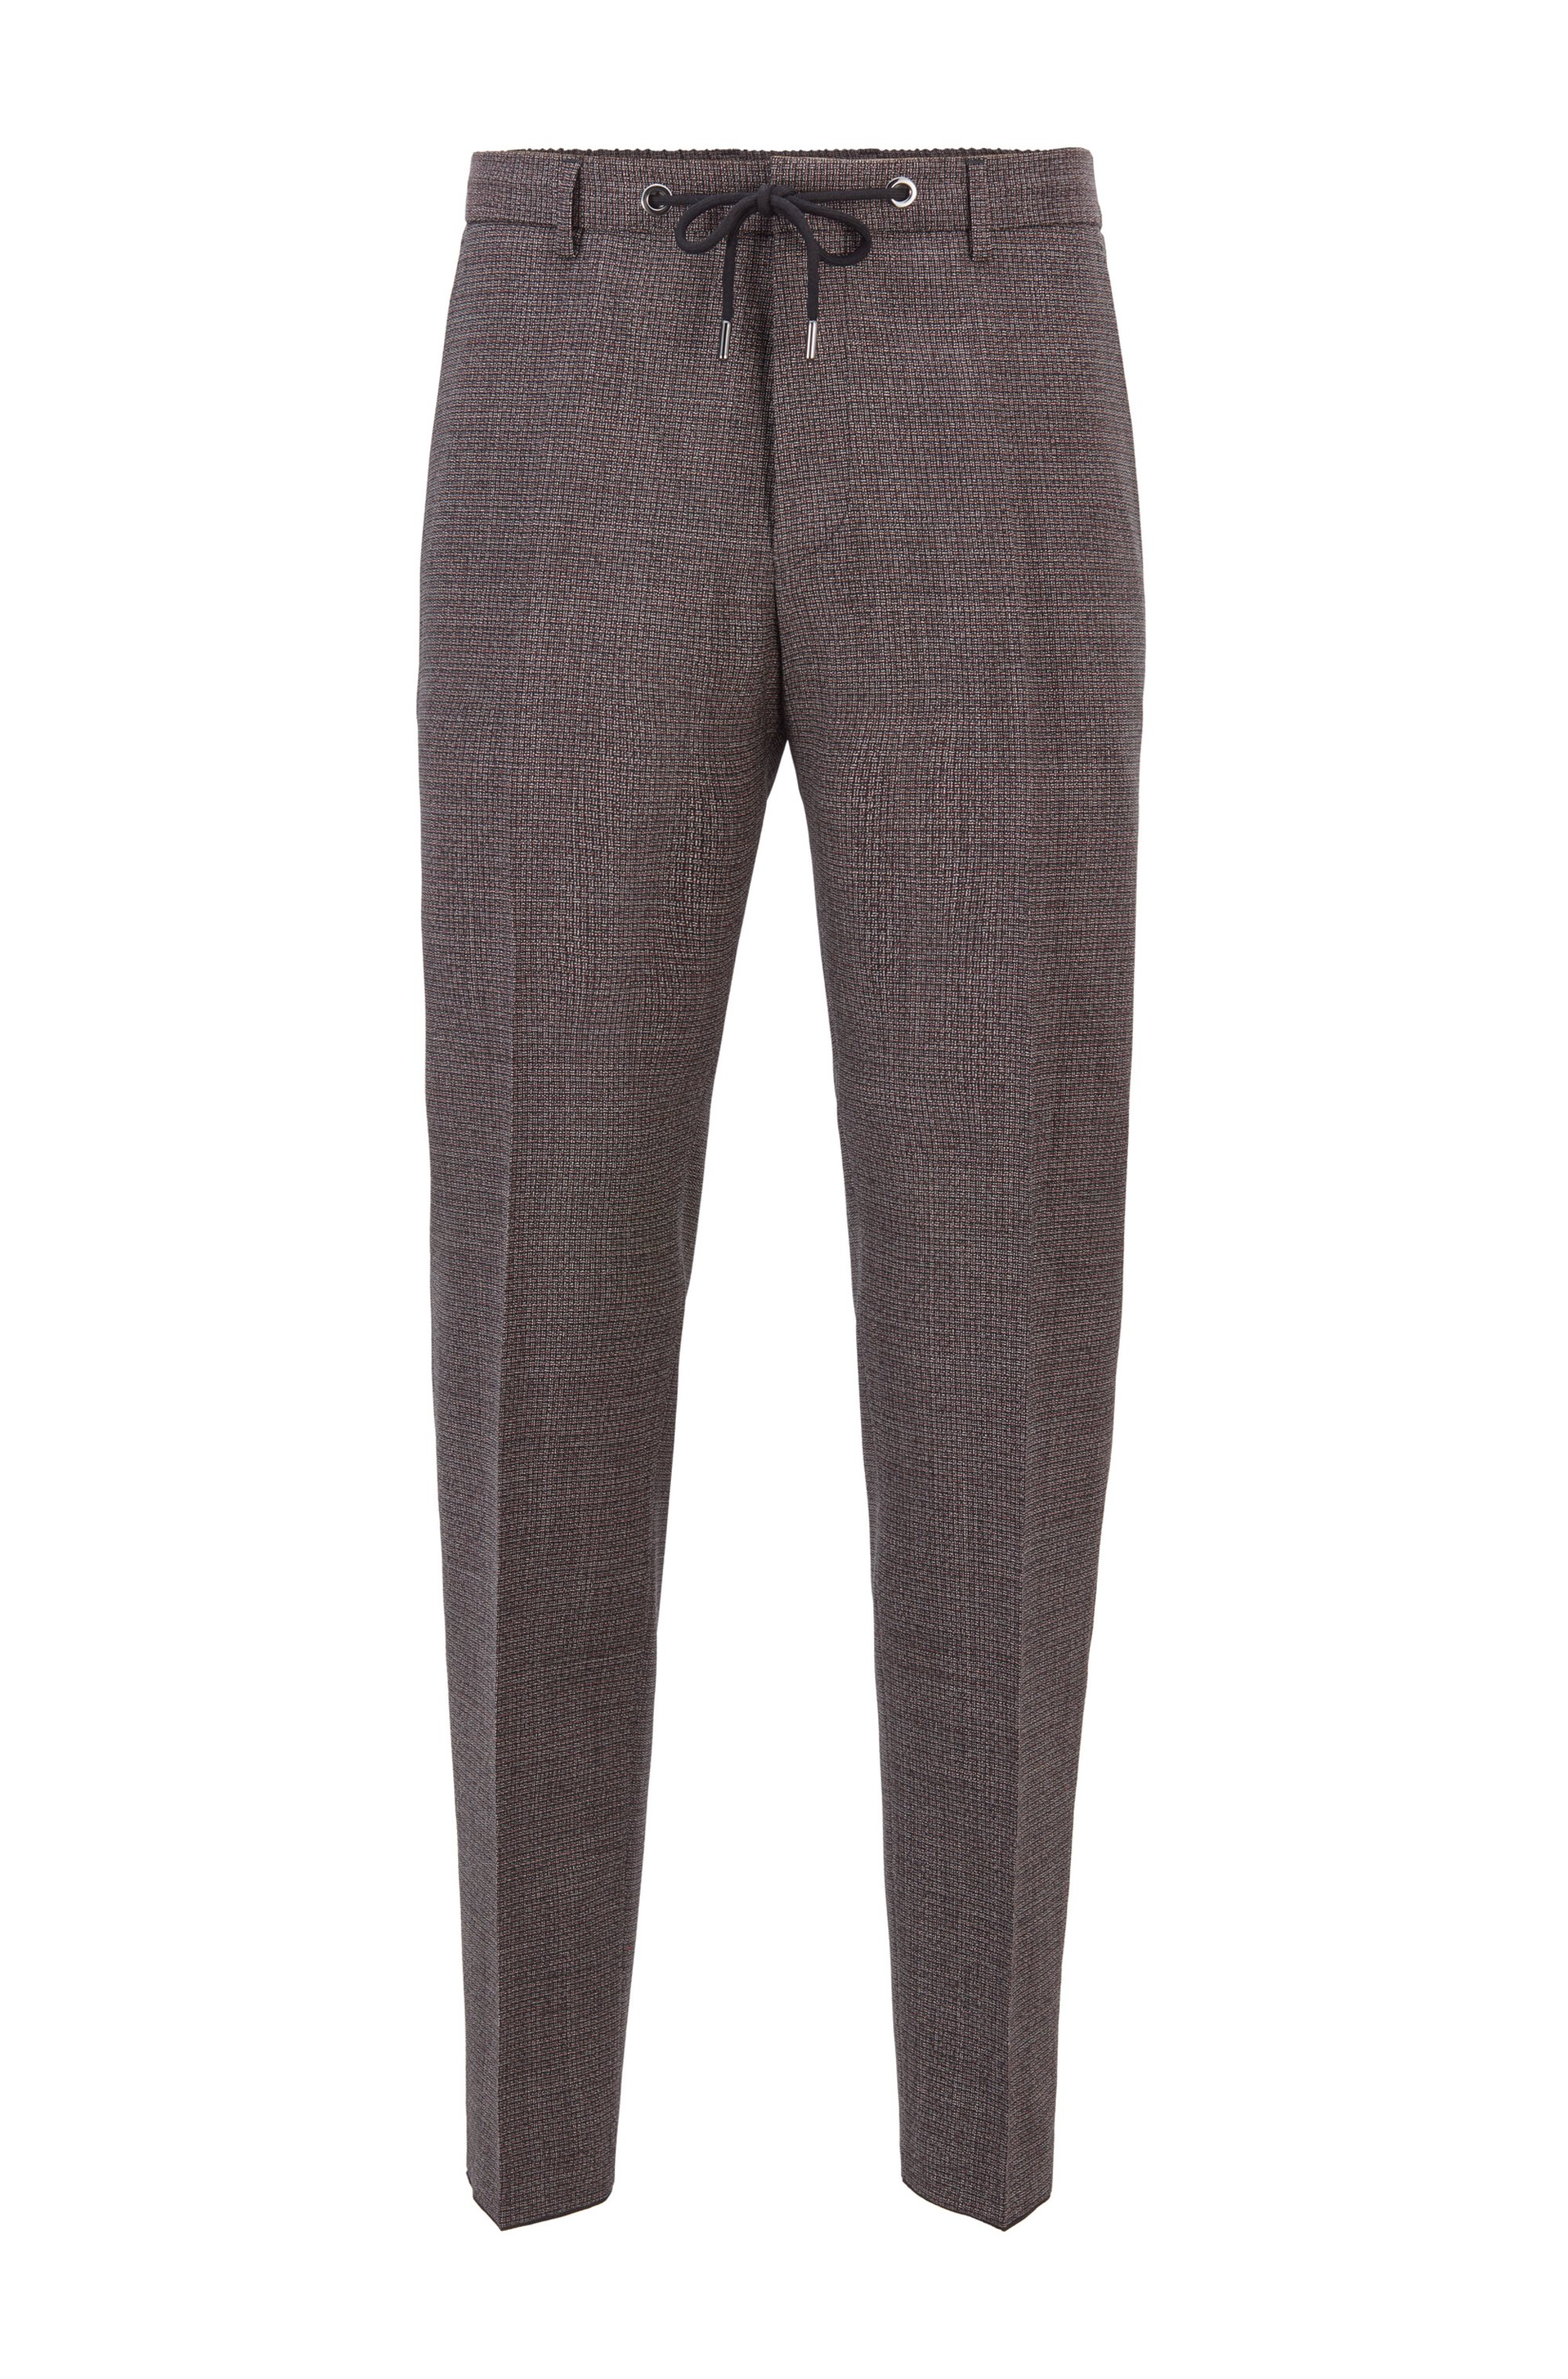 Slim-fit trousers in micro-patterned virgin wool, Brown Patterned